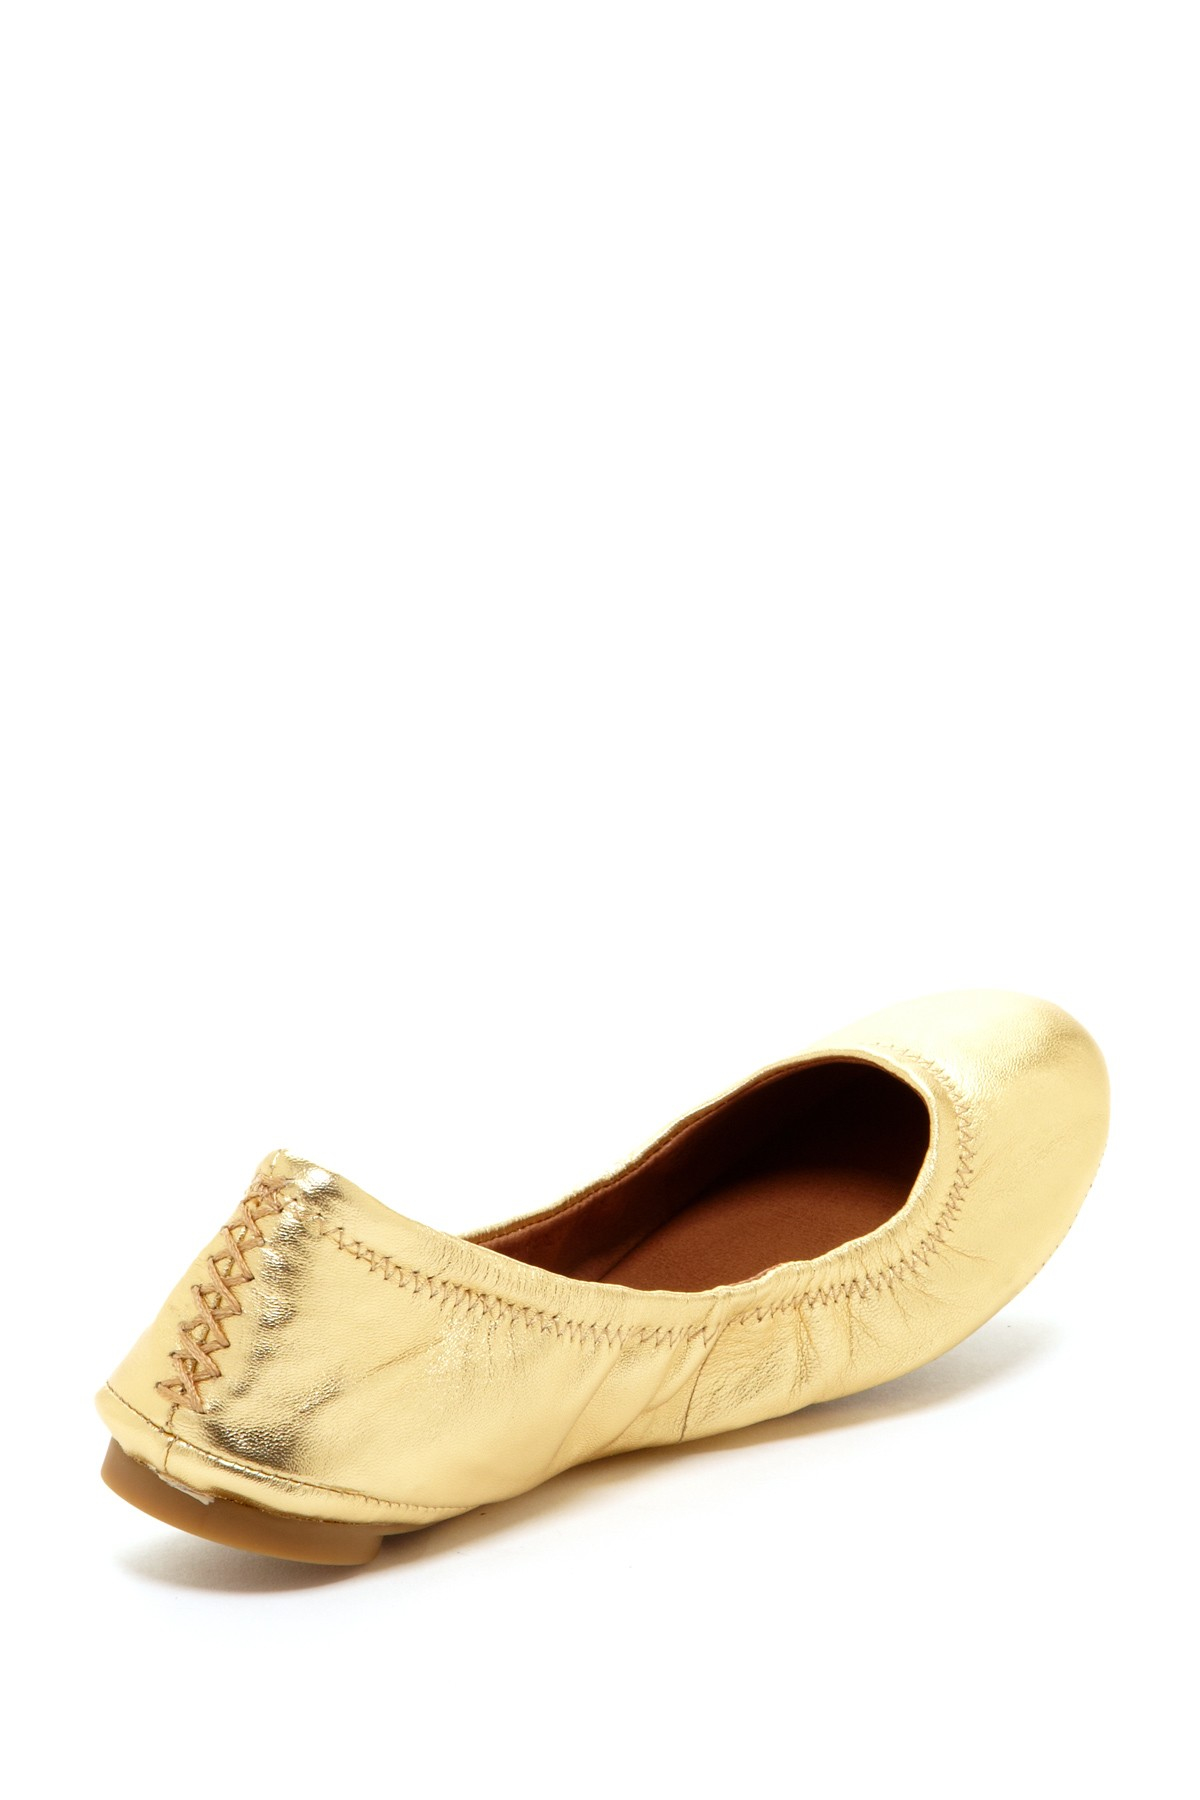 Lucky Brand Shoes Lk Emmie